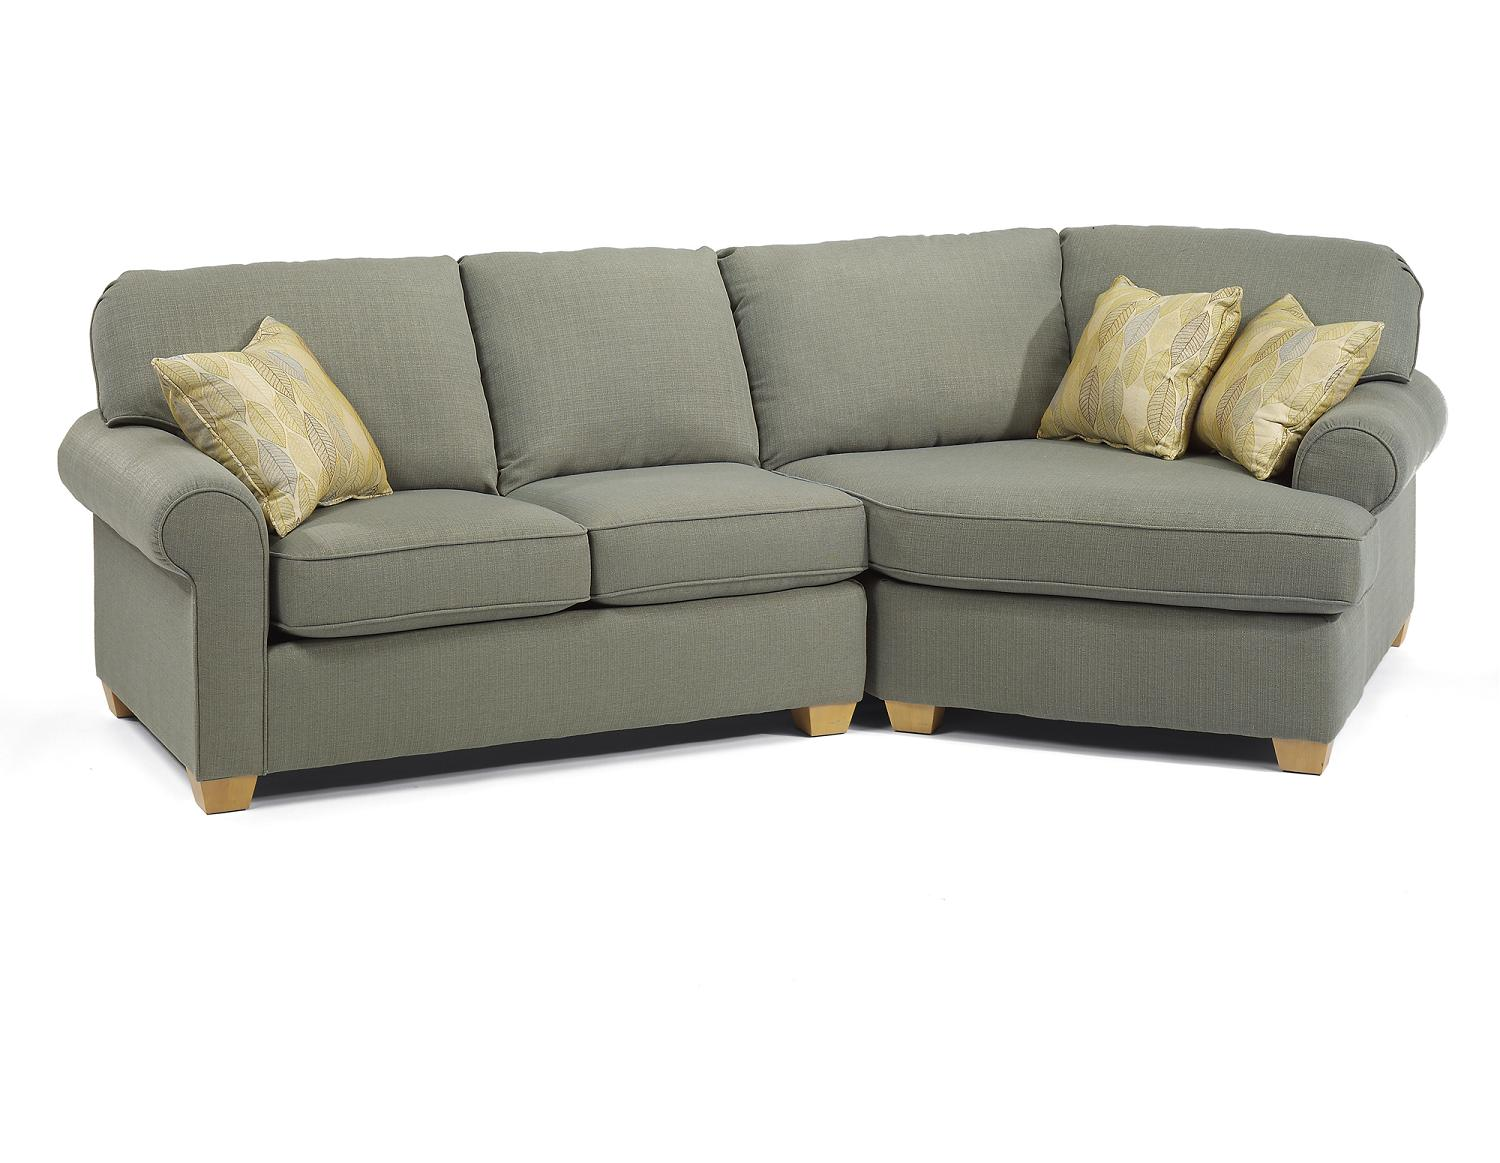 Cheap sectional sofas under 100 couch sofa ideas Best loveseats